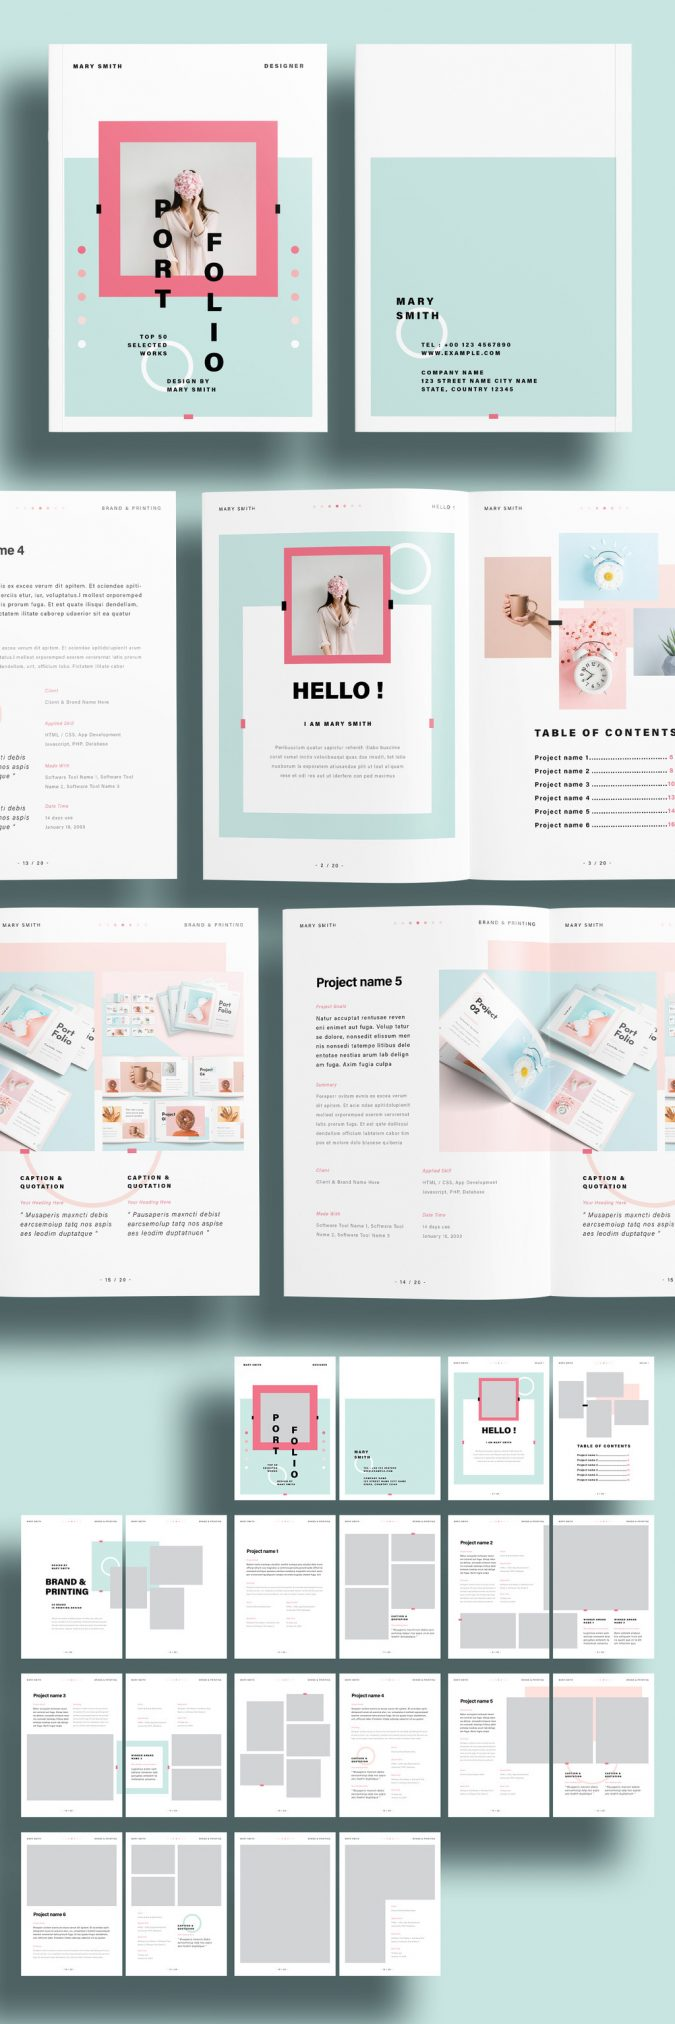 A modern and fresh portfolio template for Adobe InDesign.